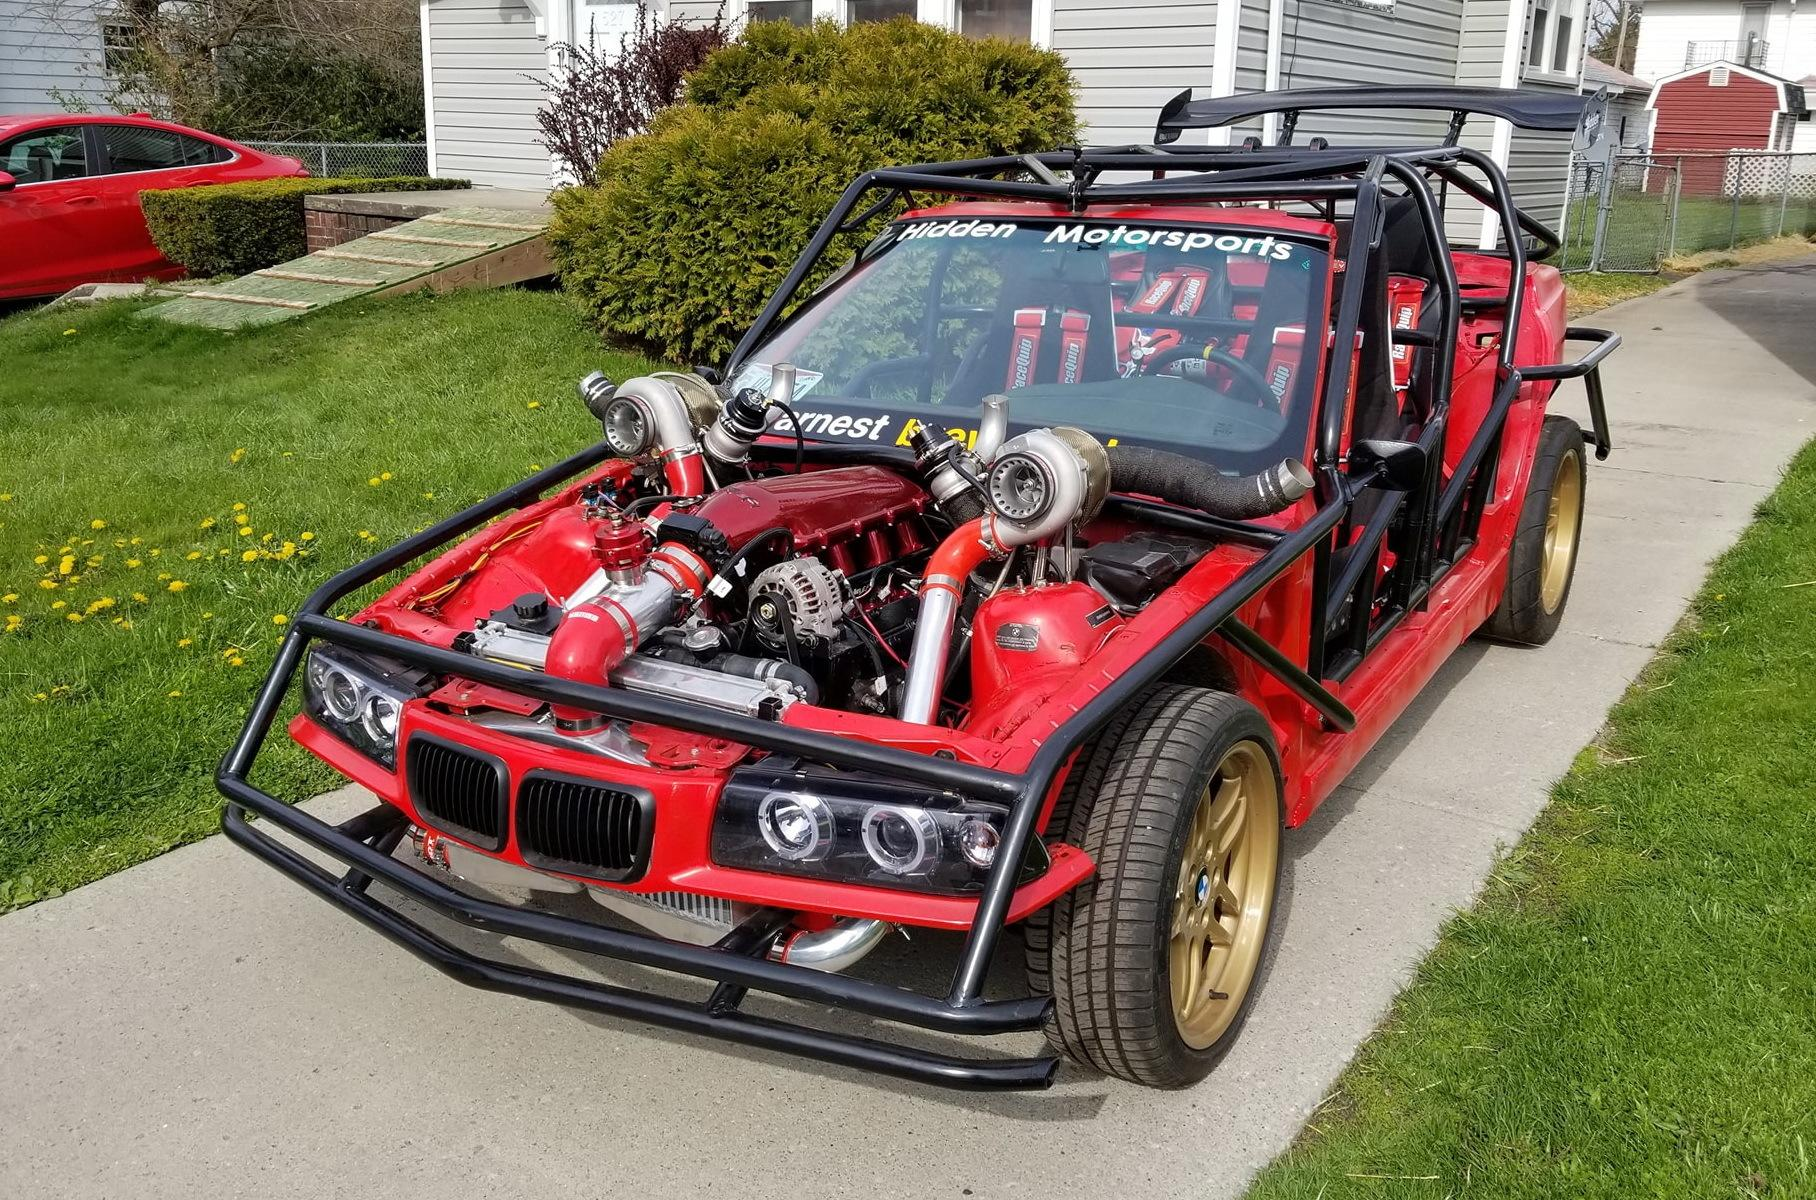 Ohio-based tuner workshop Hidden Motorsports has gone full length turning an old E36 BMW 3 Series into a jalopy with space shuttle-like dynamics. Proceed at your own risk!